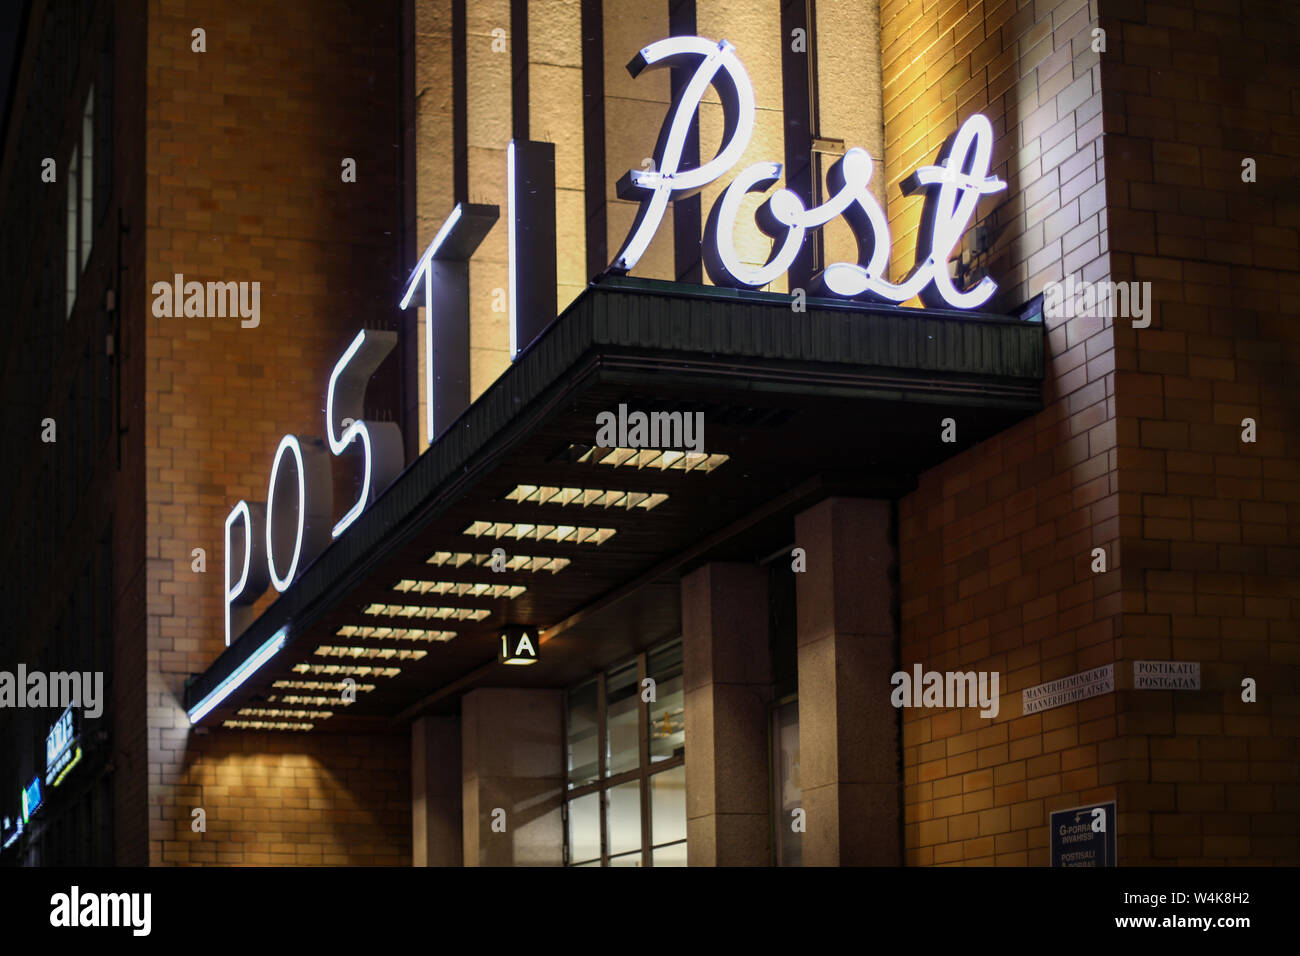 Neon lights of Postitalo - former HQ of Finnish Post Ltd - in Helsinki, Finland Stock Photo